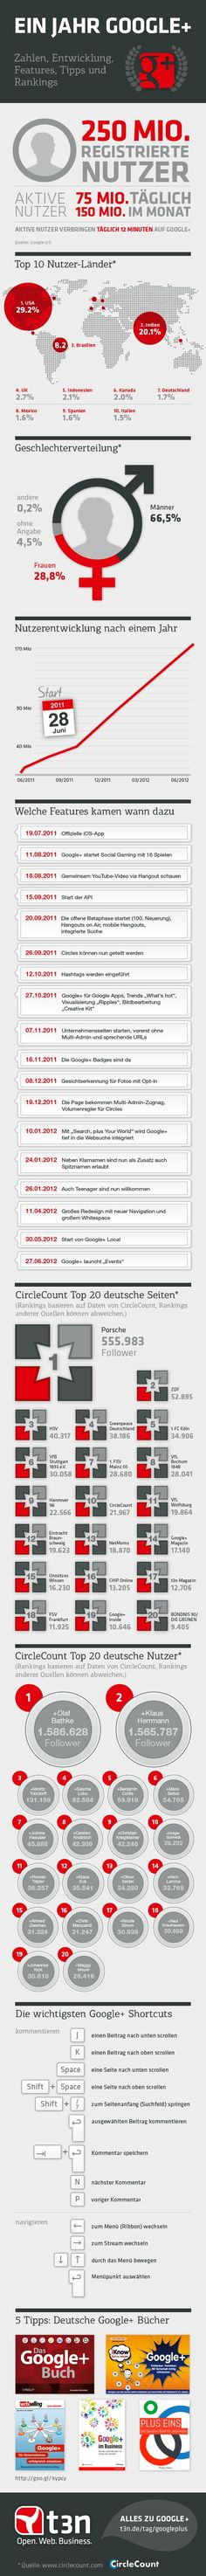 1y Google+ – Features, Tipps, Rankings